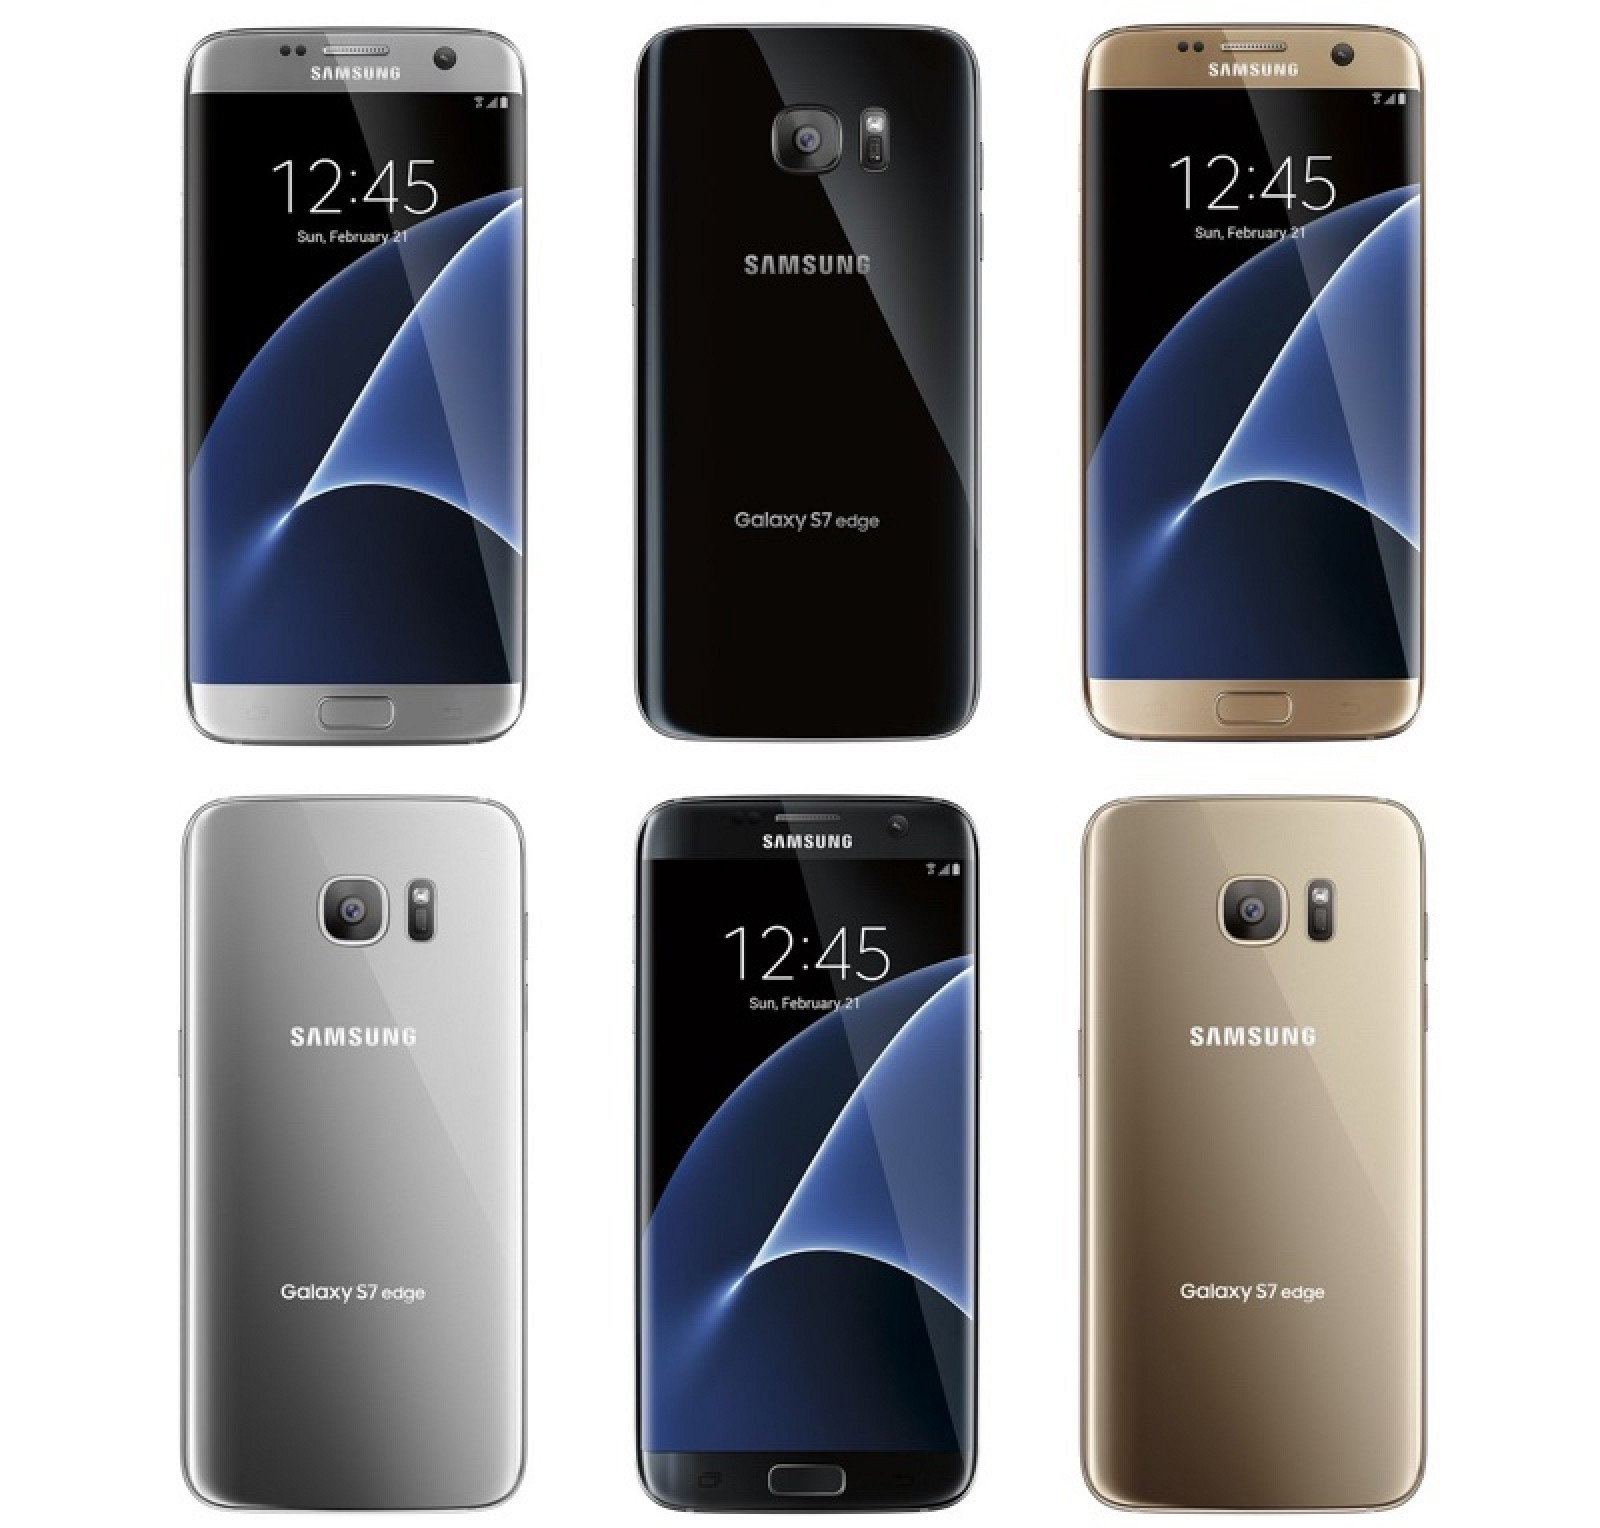 samsungrenderings